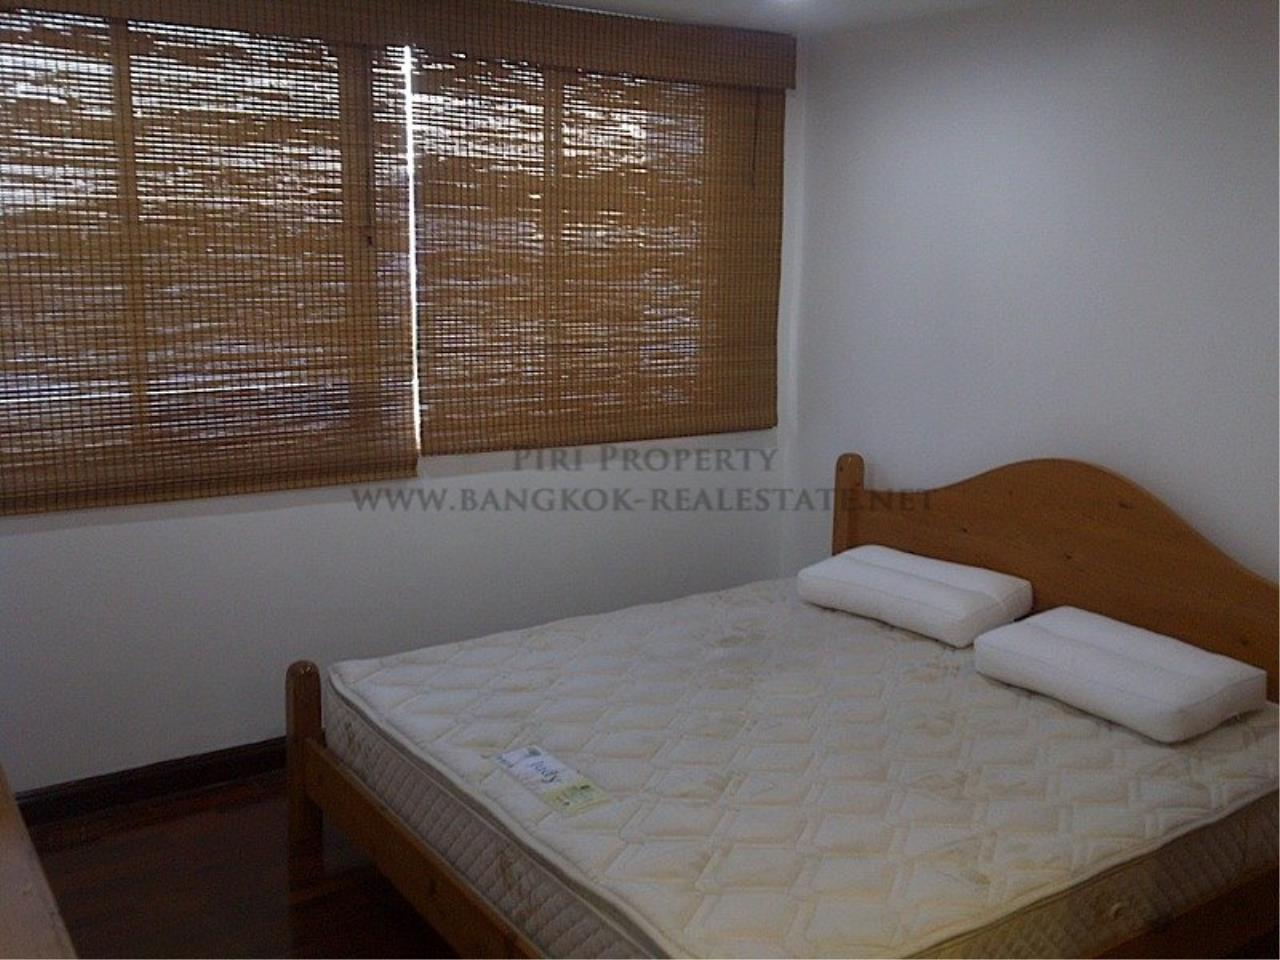 Piri Property Agency's One Bedroom Unit - Monterey Place - Recently Renovated 5